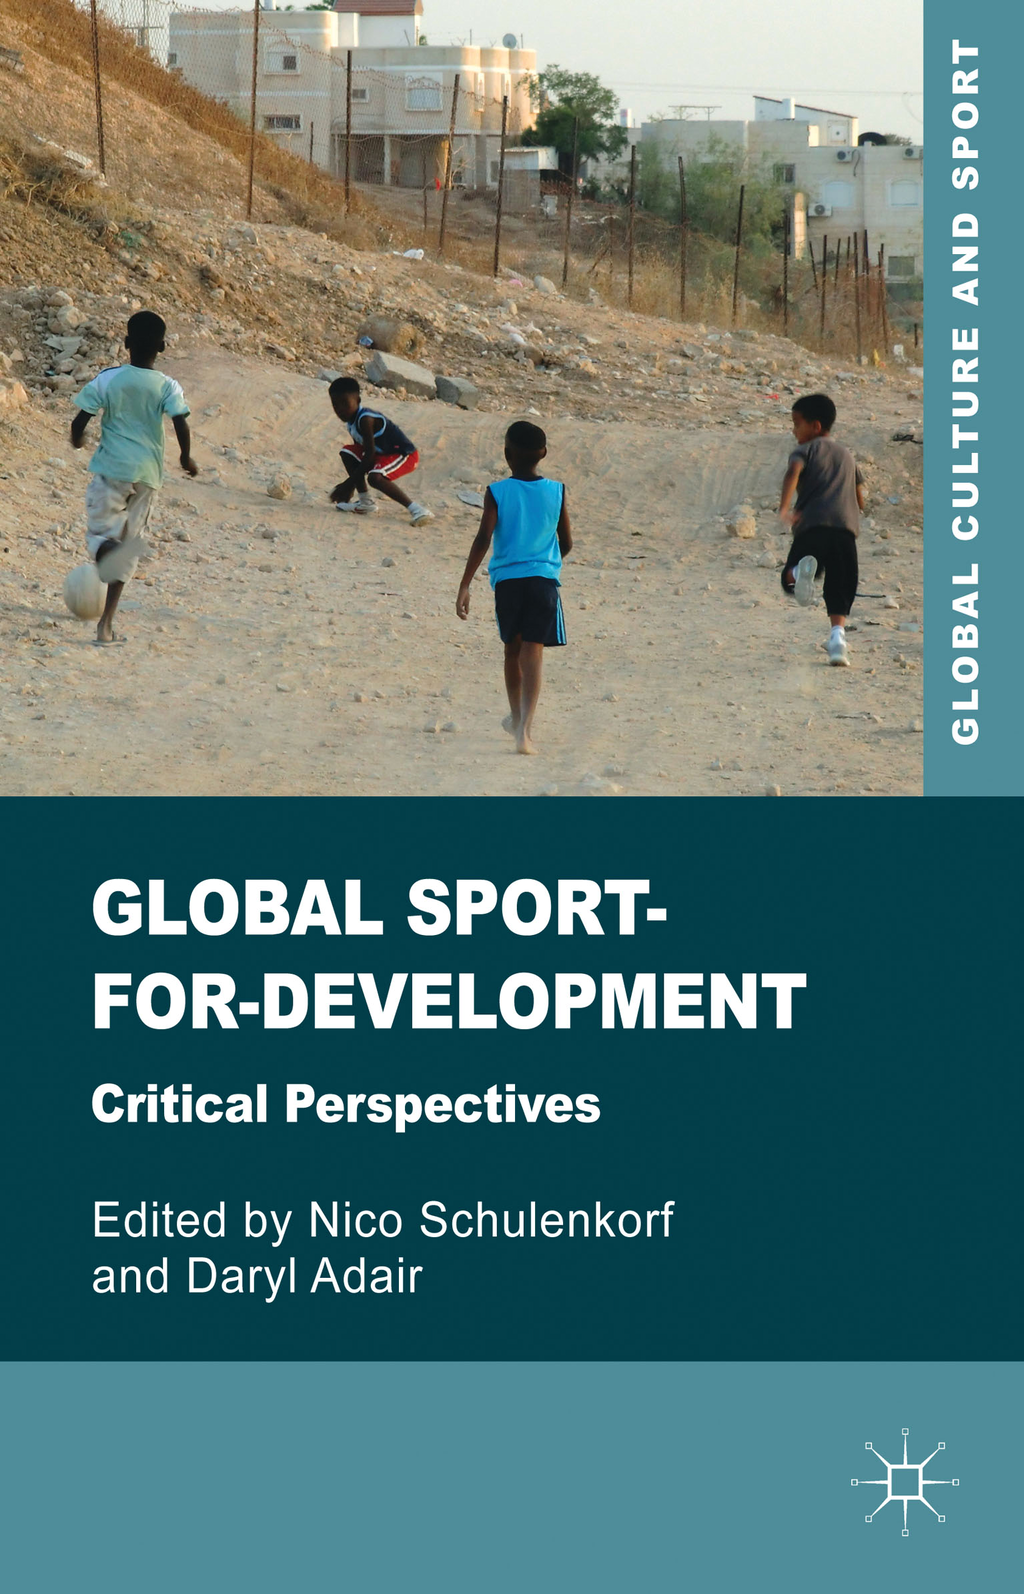 Global Sport-for-Development Critical Perspectives